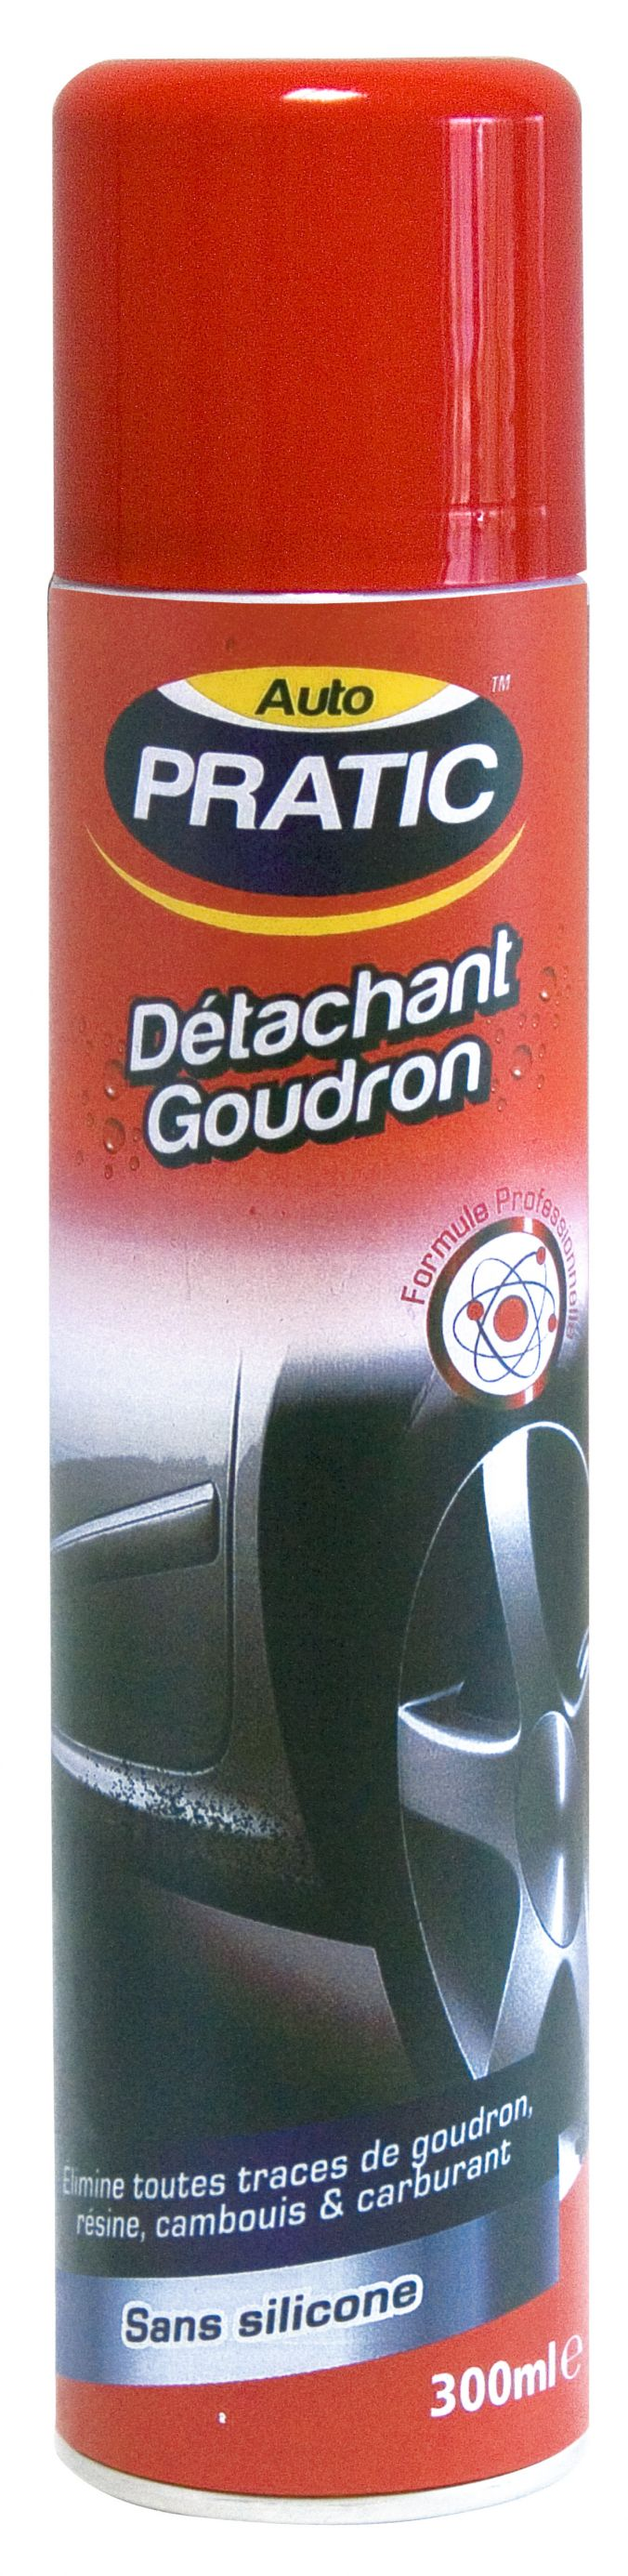 Détachant Goudron AUTO PRATIC